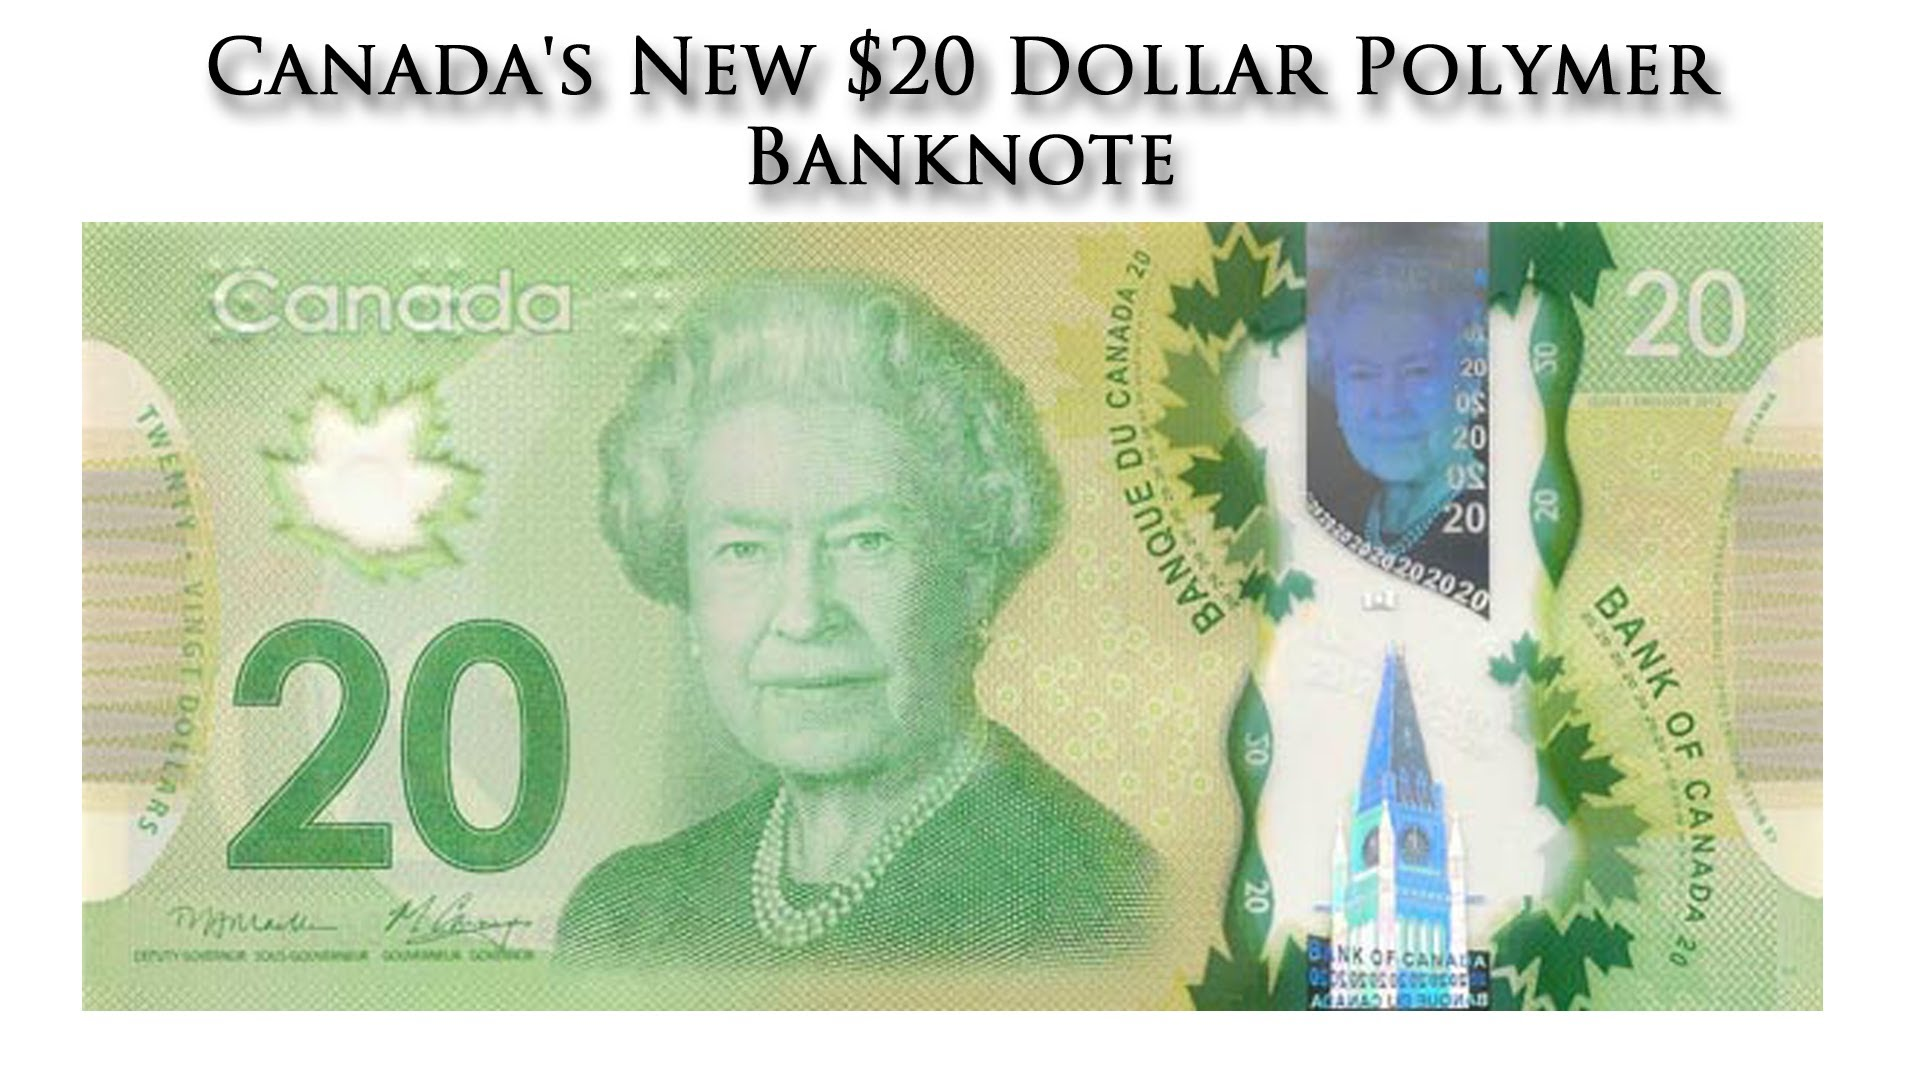 Canada's New $20 Dollar Polymer Banknote